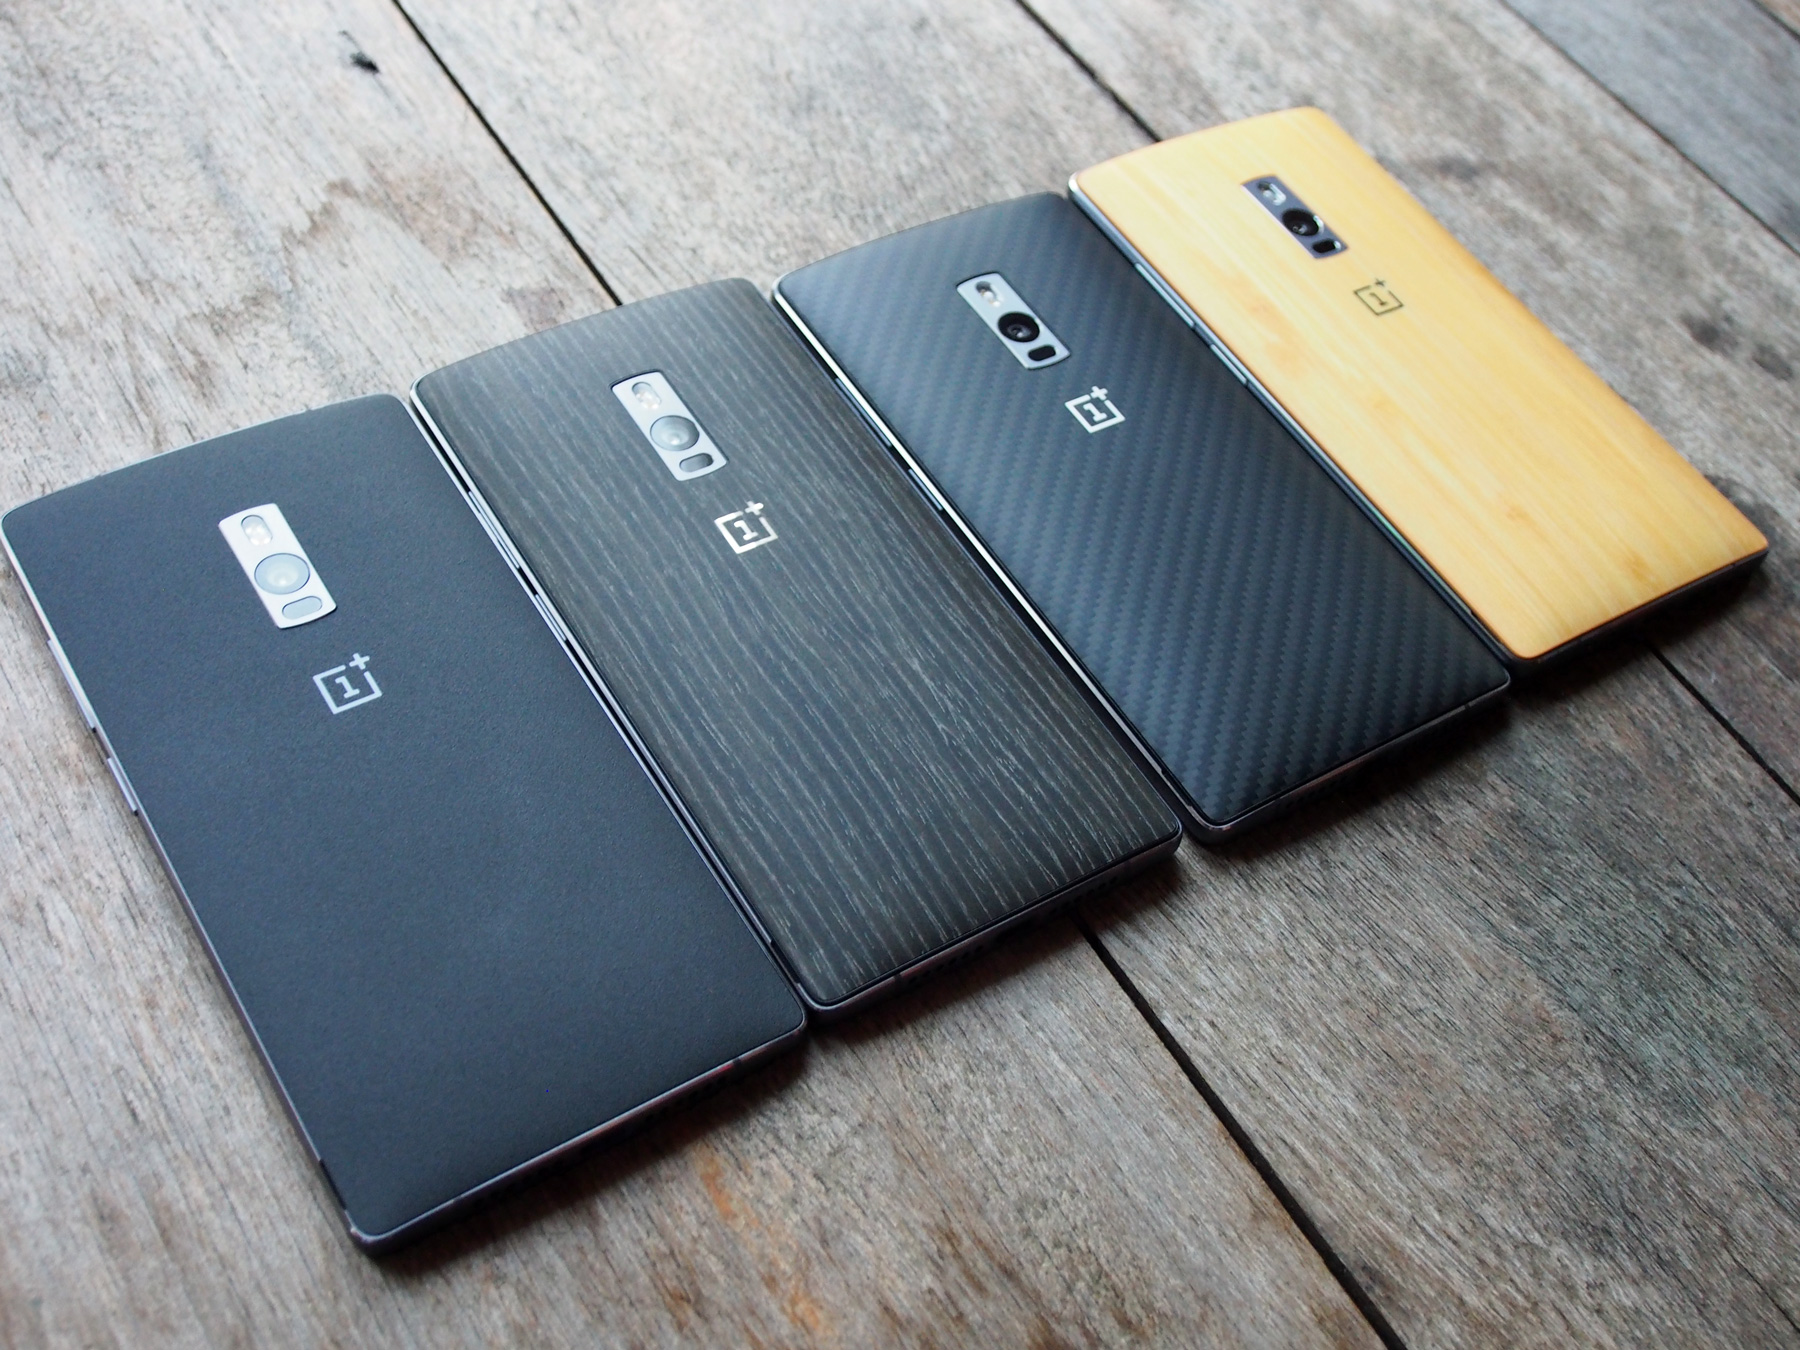 Four of the StyleSwap colors – default Sandstone Black, Black Apricot, Kevlar, and Bamboo. Rosewood is not pictured here.